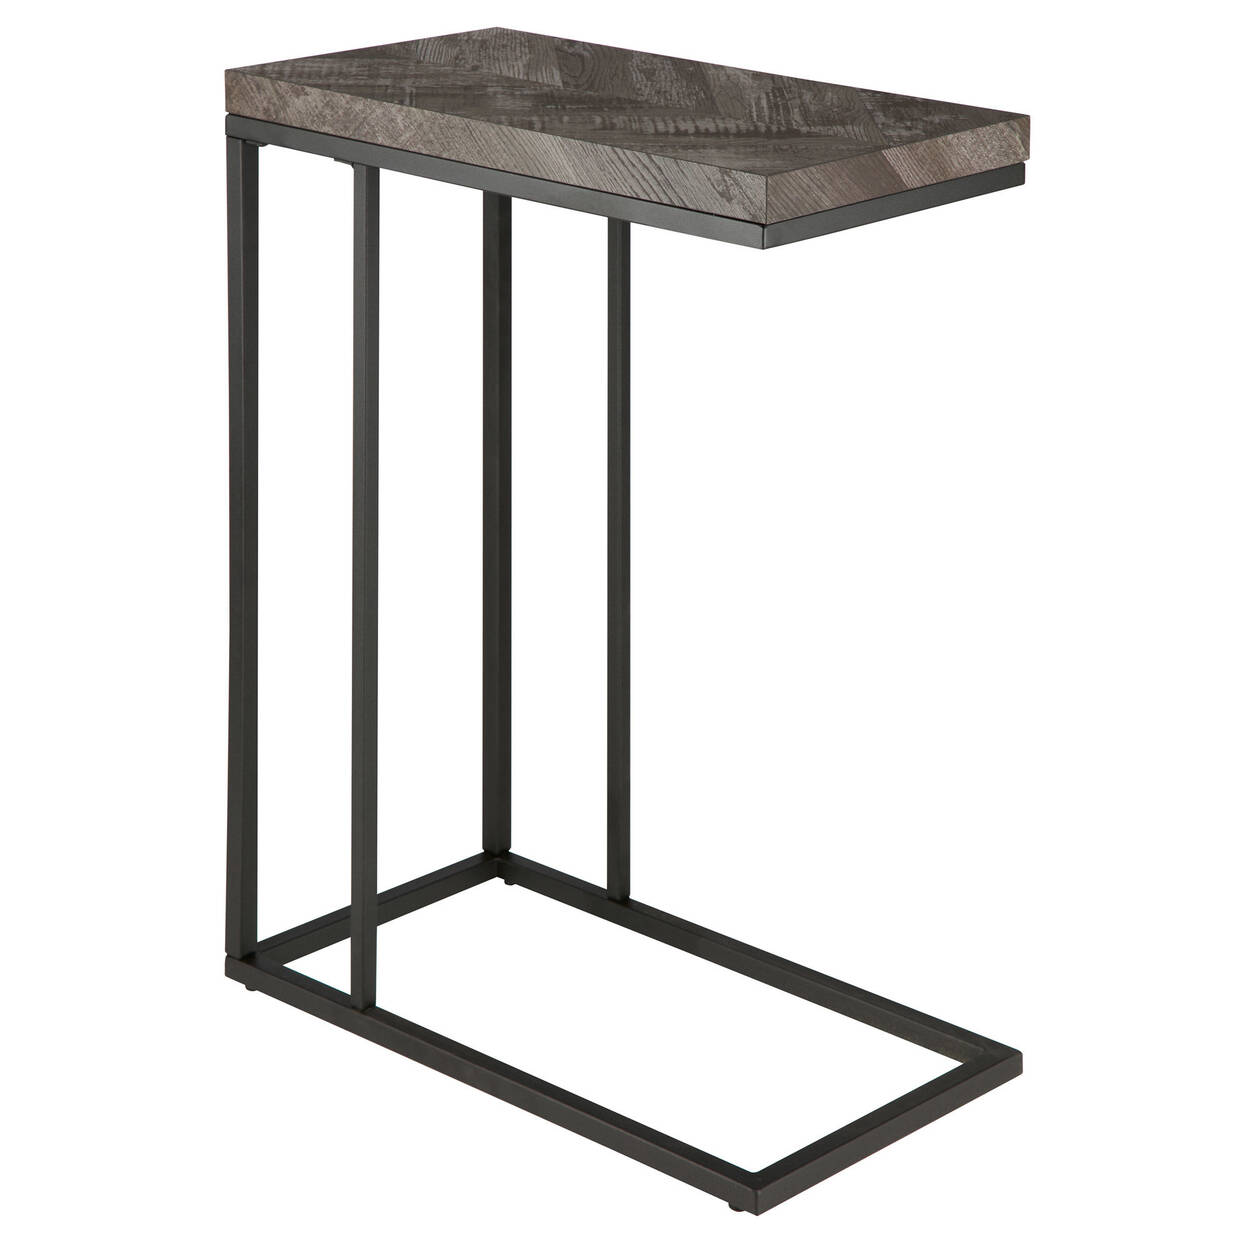 Table d'appoint en chevron et en fer